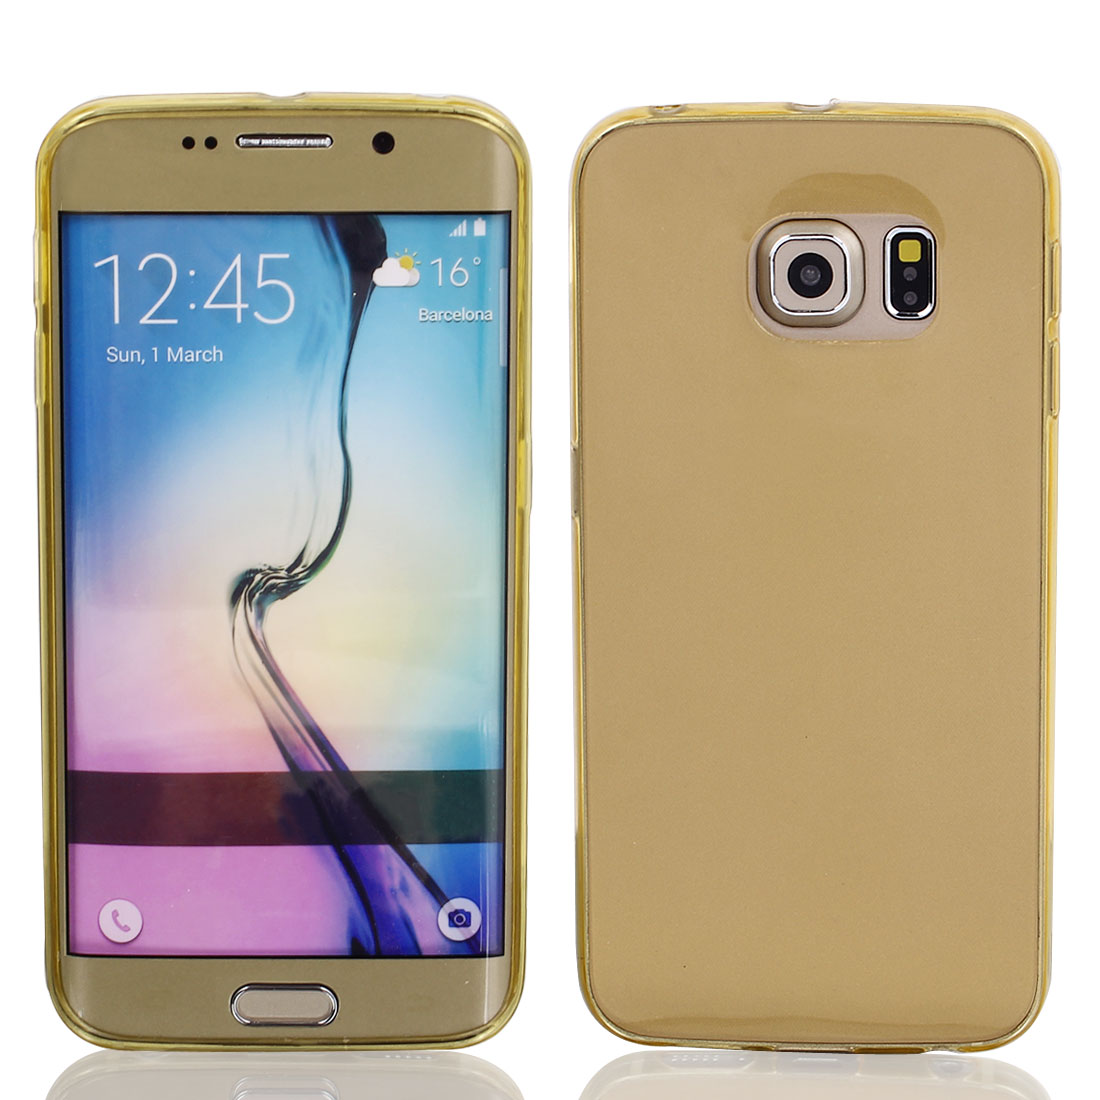 TPU Ultra Thin Case Cover Transparent Clear Beige for Galaxy S6 Edge G9200 G9250